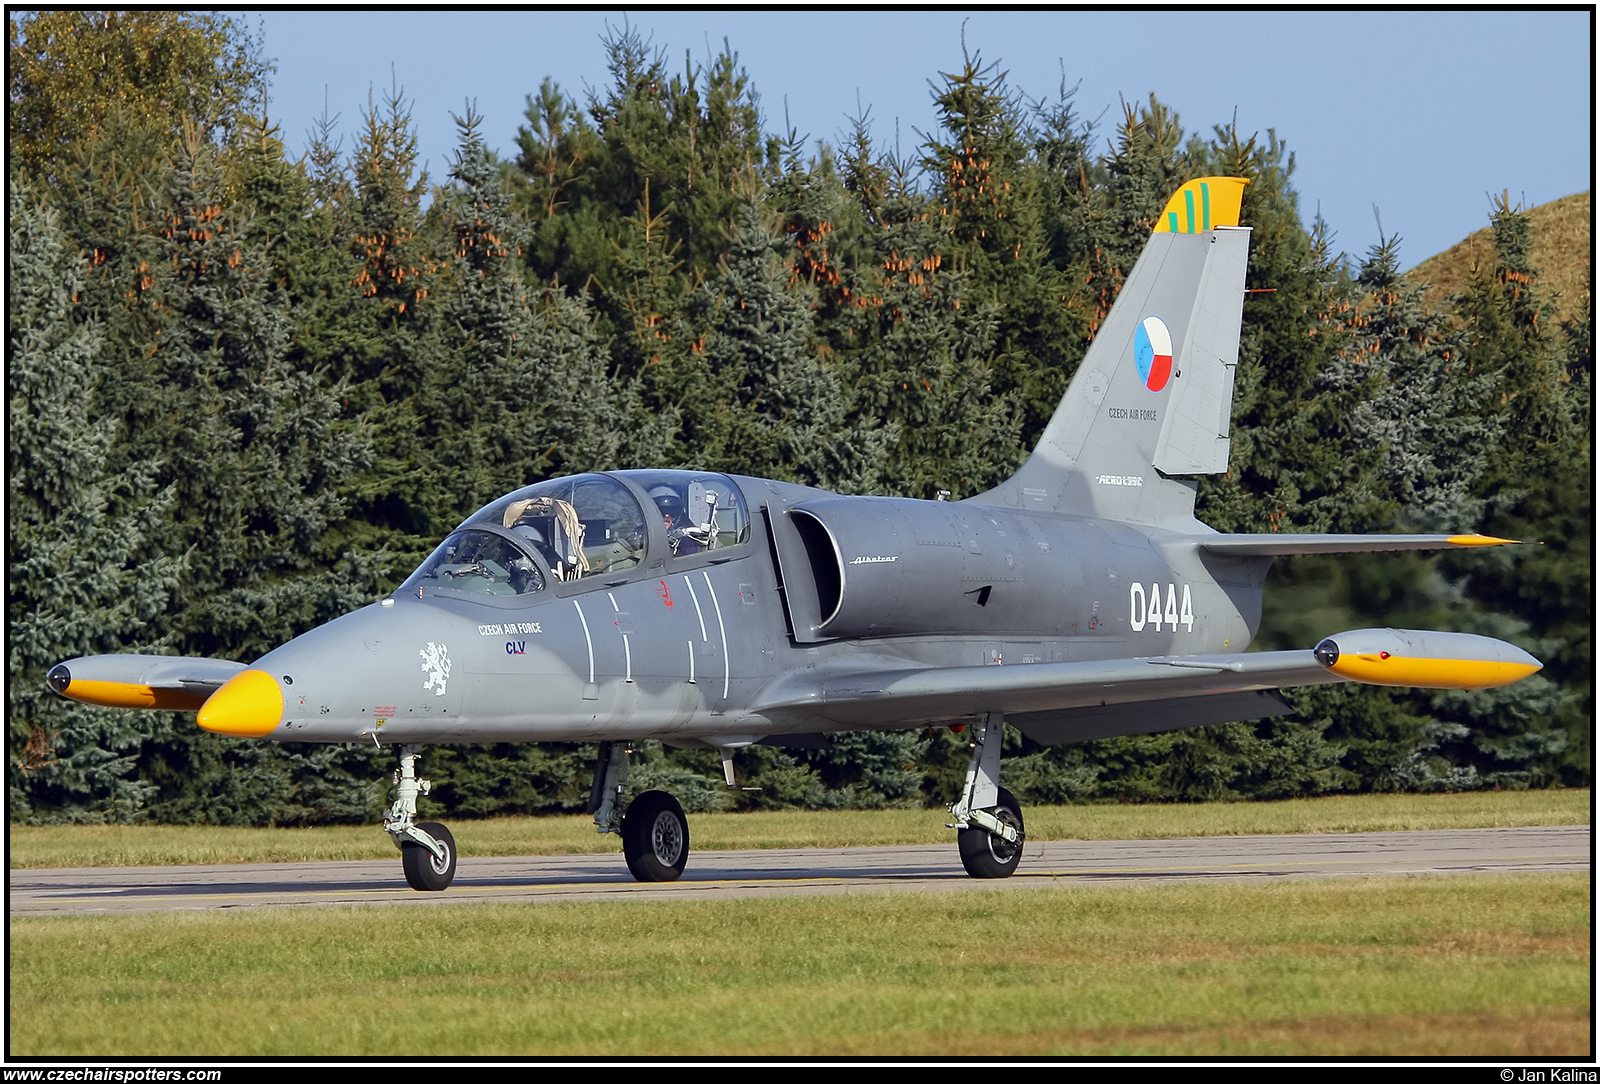 Czech - Air Force – Aero L-39C Albatros 0444